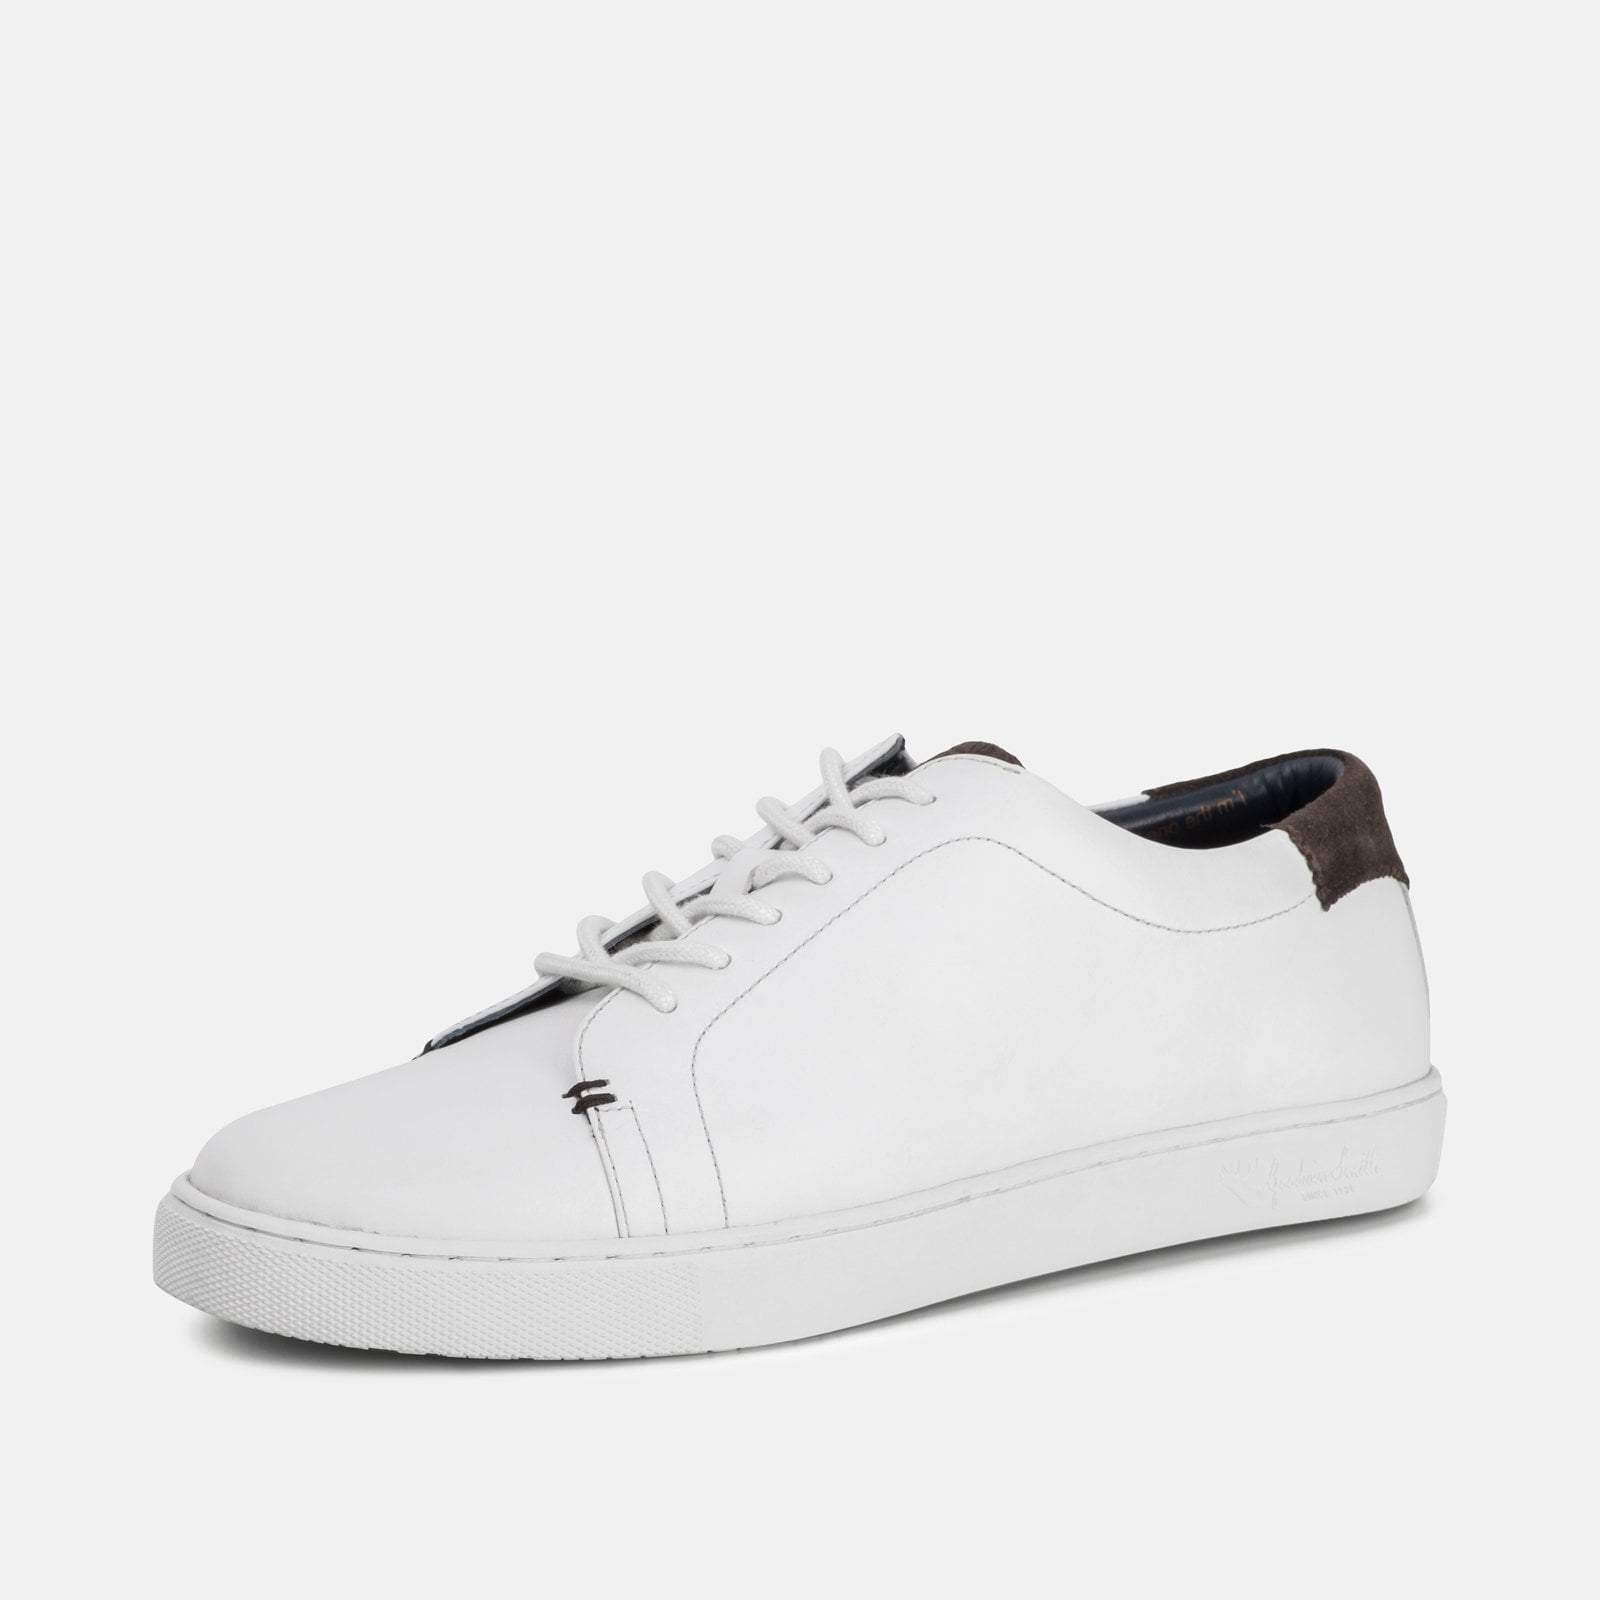 Goodwin Smith Footwear UK 6 / EURO 39 / US 7 / Navy / Nubuck MOORE WHITE